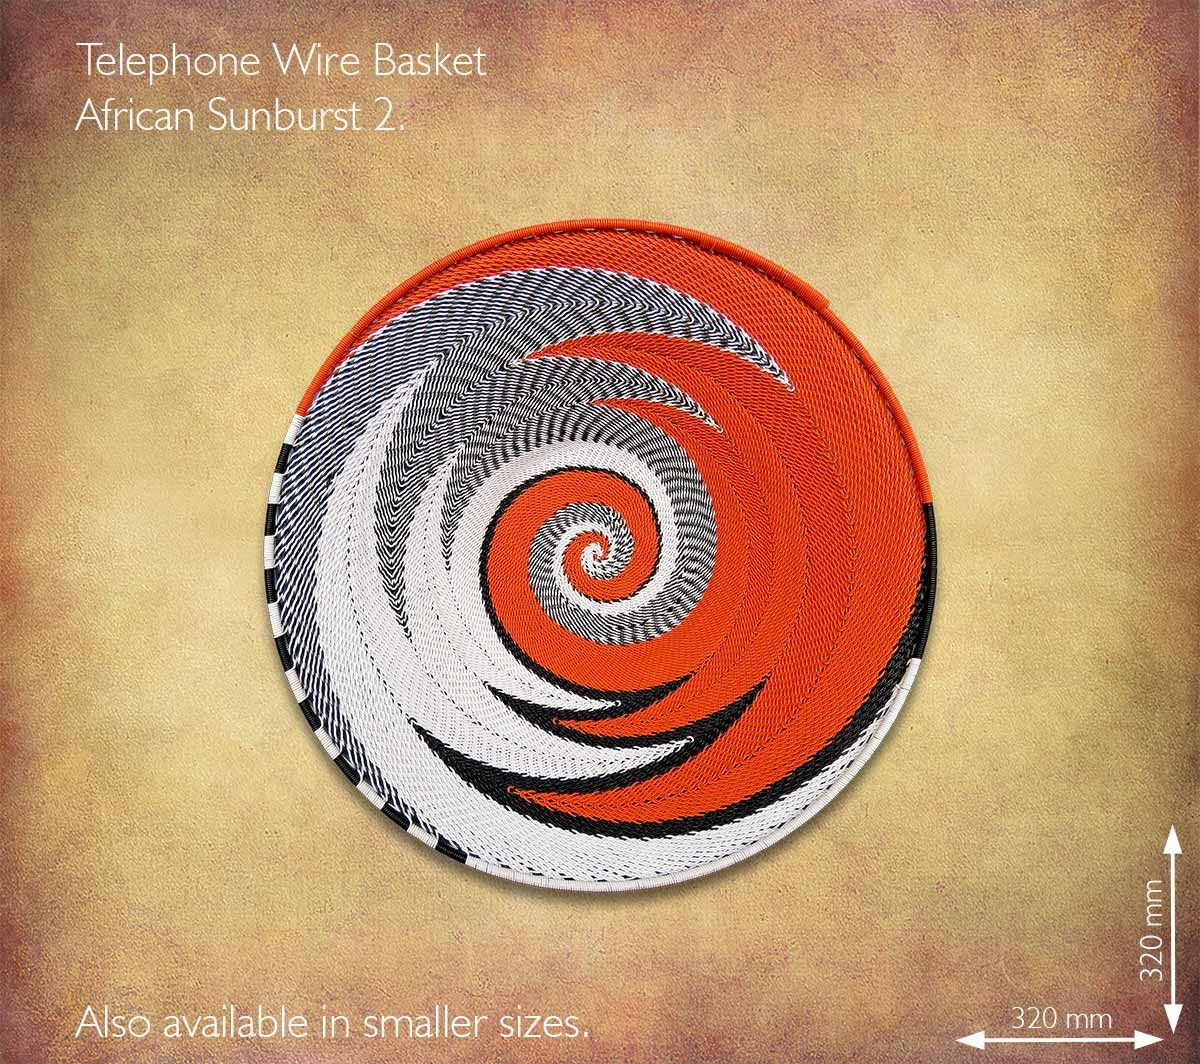 Pin by Earth Africa on Telephone Wire baskets Wire baskets